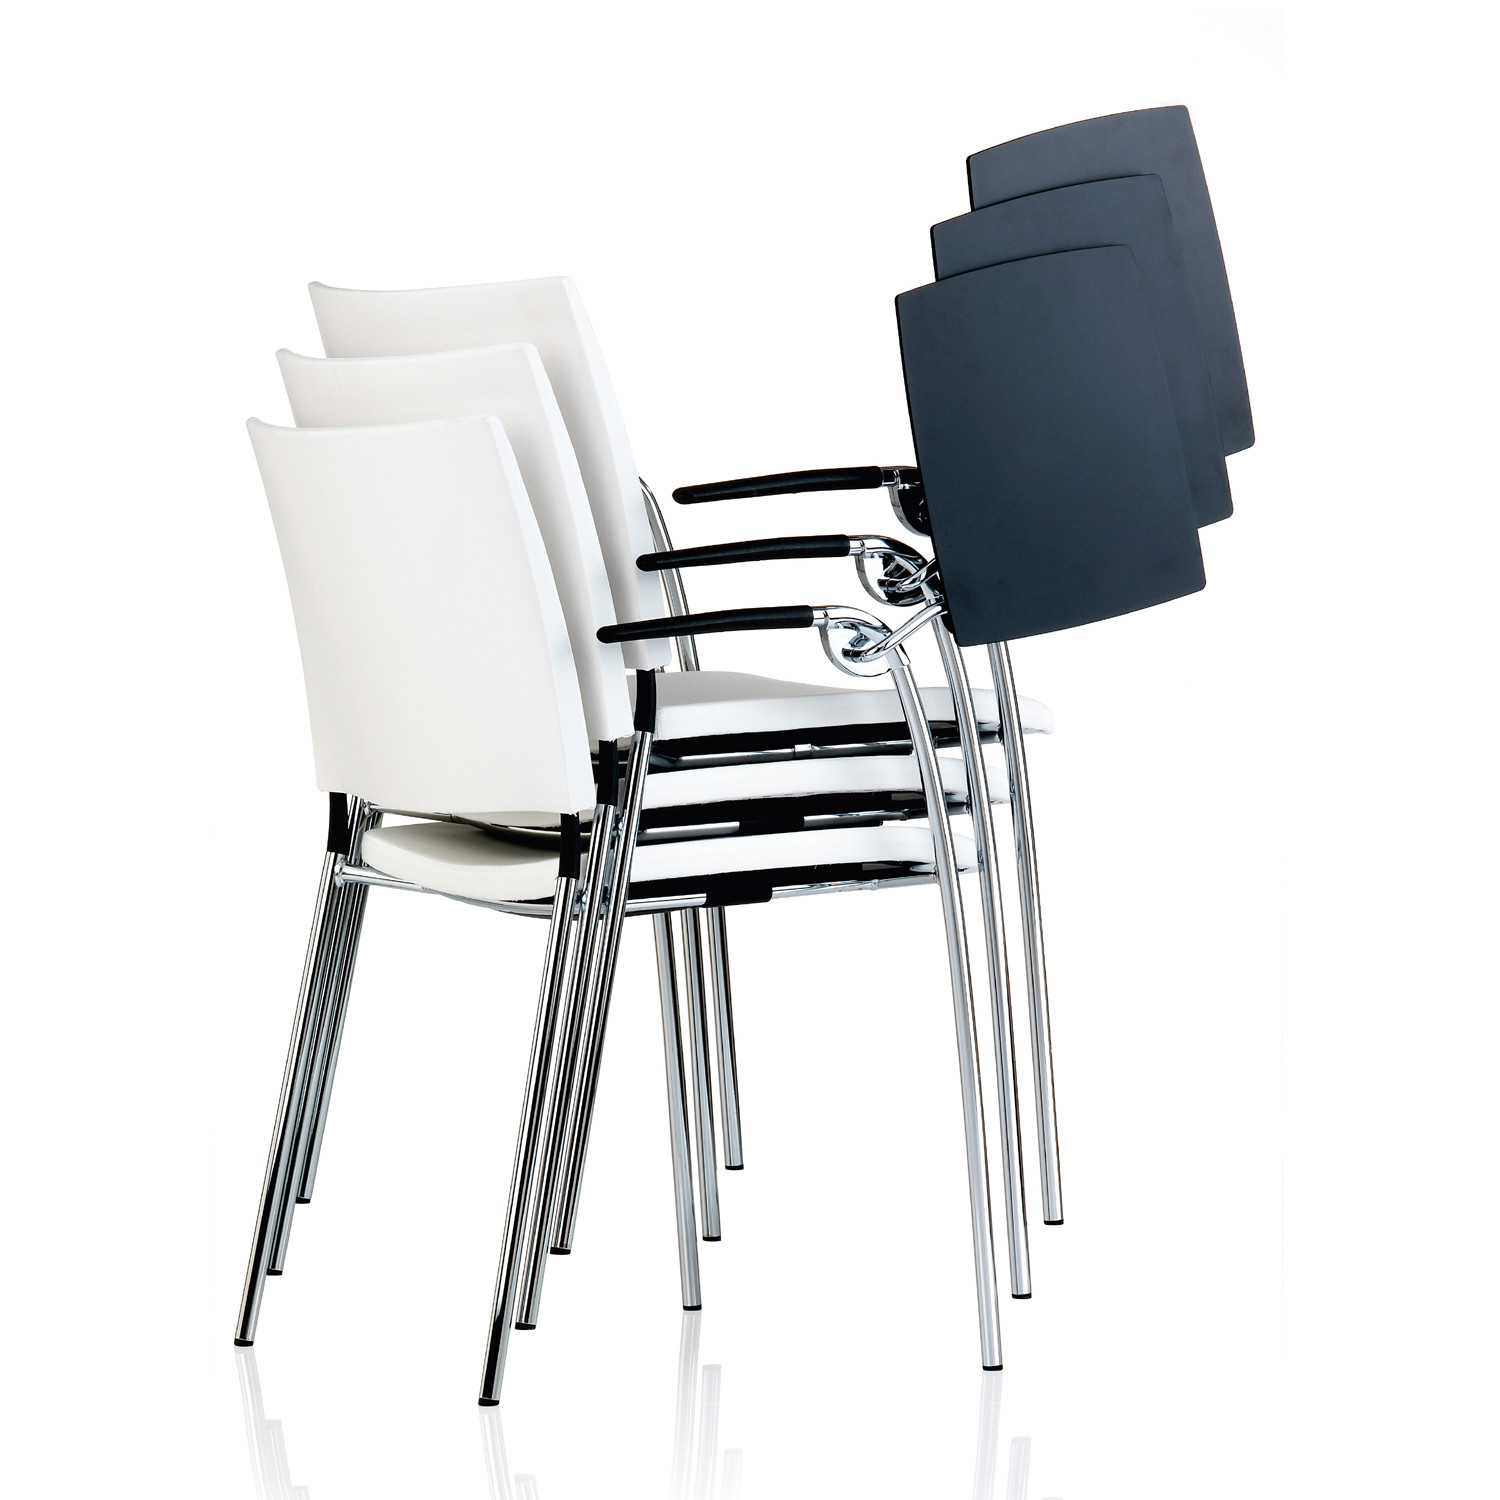 Spira Chairs With Writing Tablets